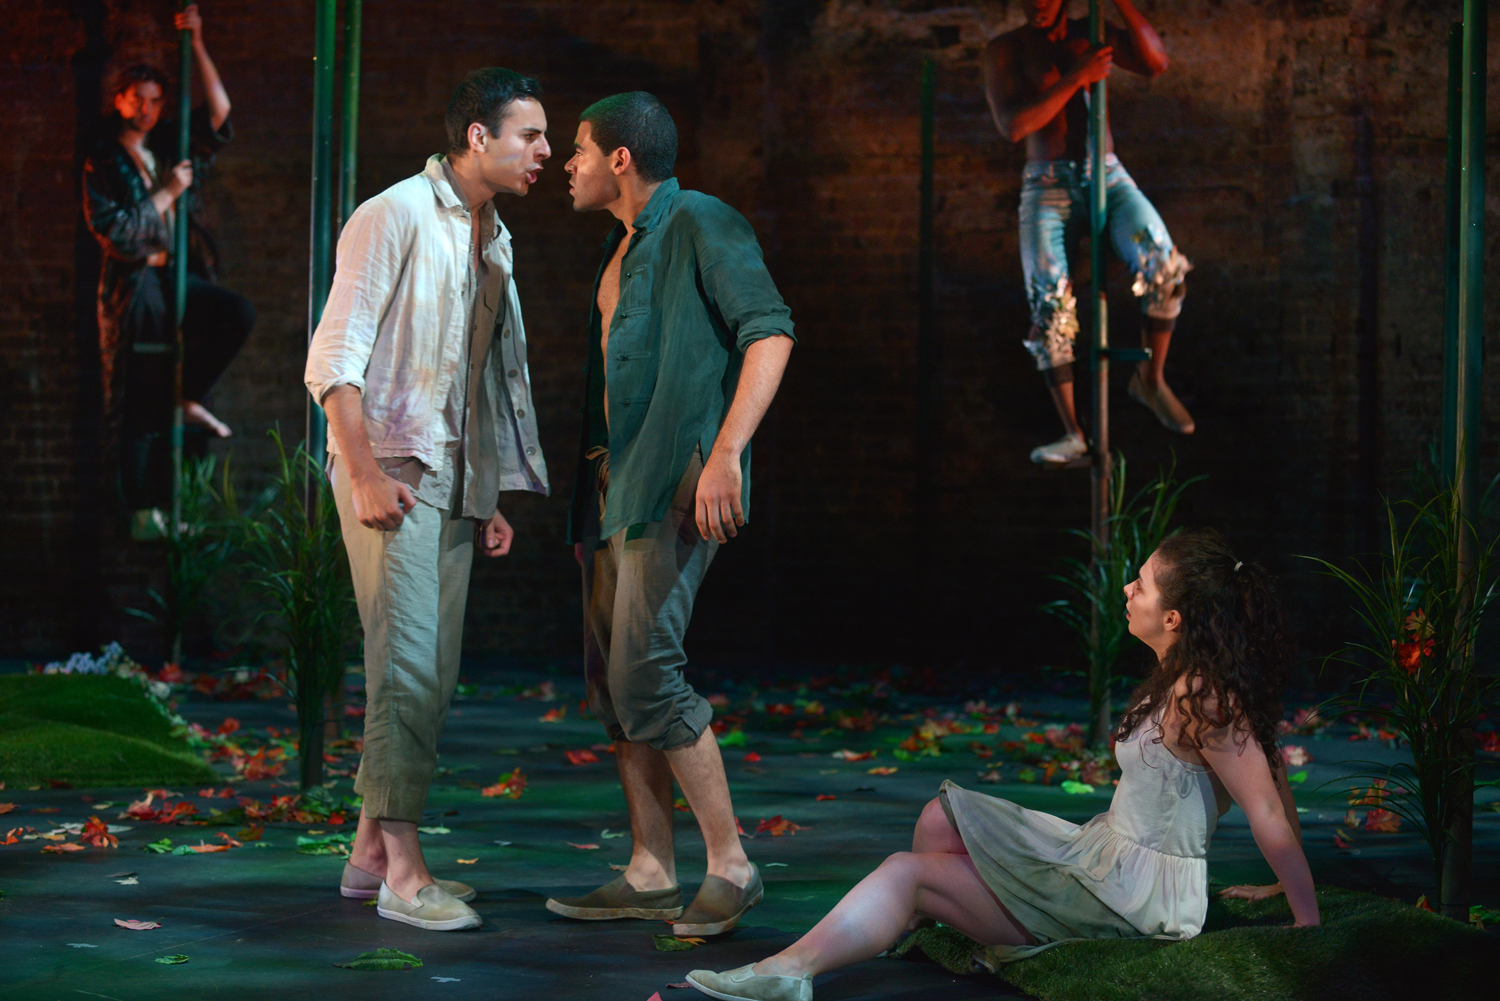 CHEER - theatre reviews: 'A Midsummer Night's Dream' Review